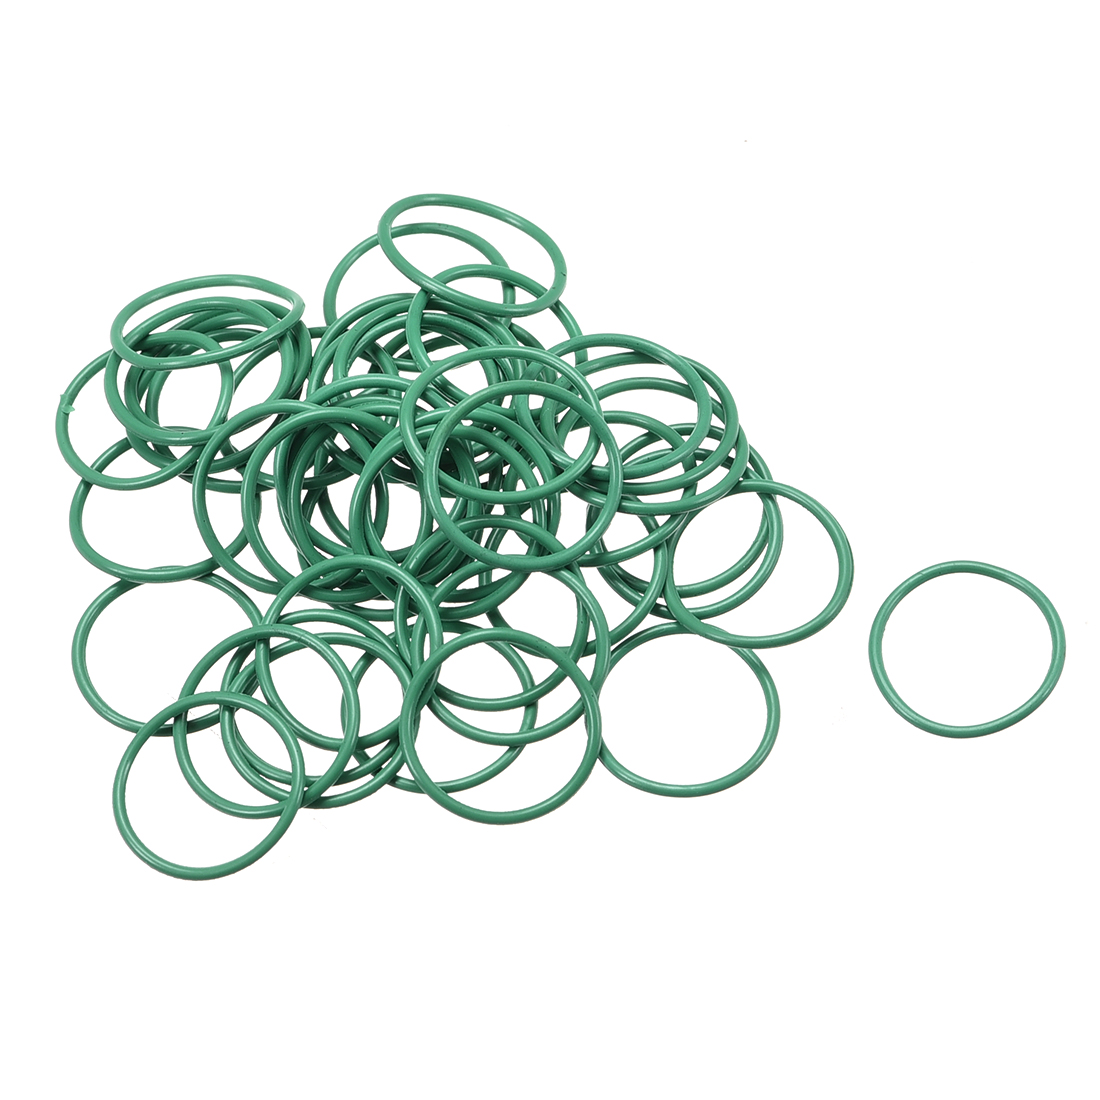 20Pcs 14mm x 1mm FKM Fluoro Rubber O-rings Heat Resistant Sealing Ring Grommets